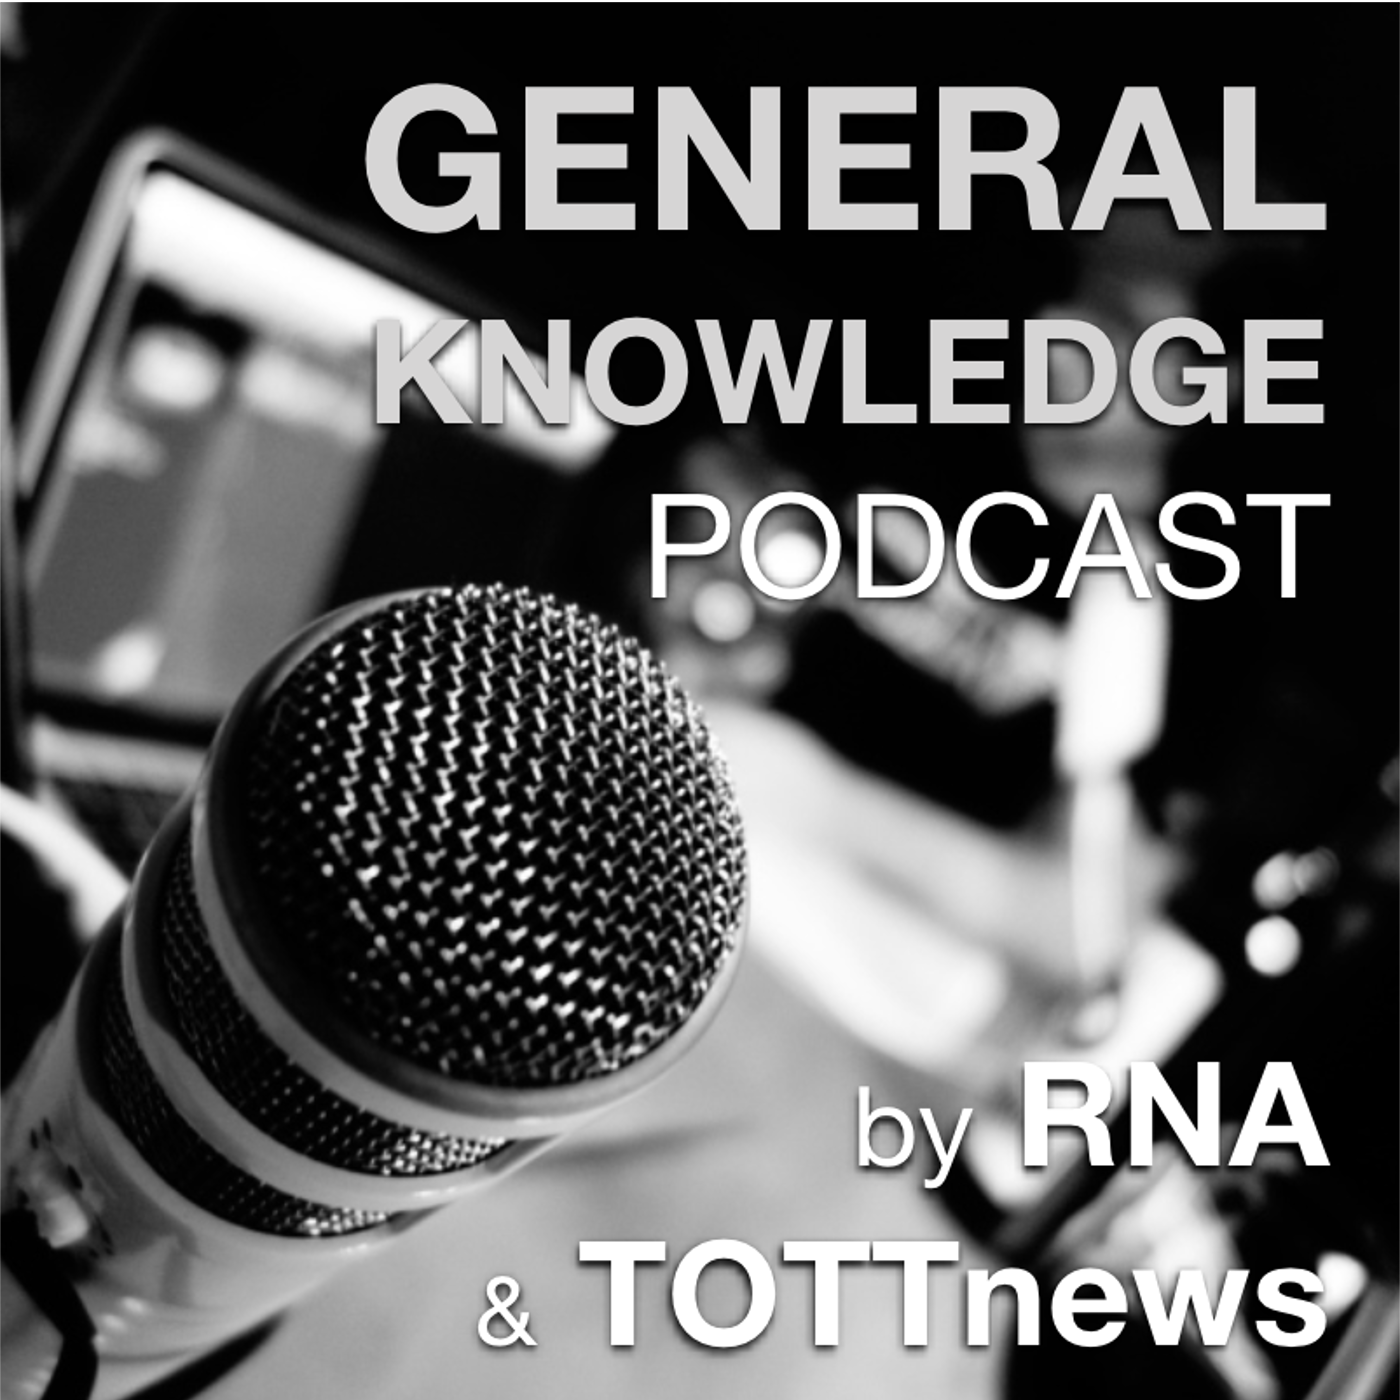 General Knowledge Podcast